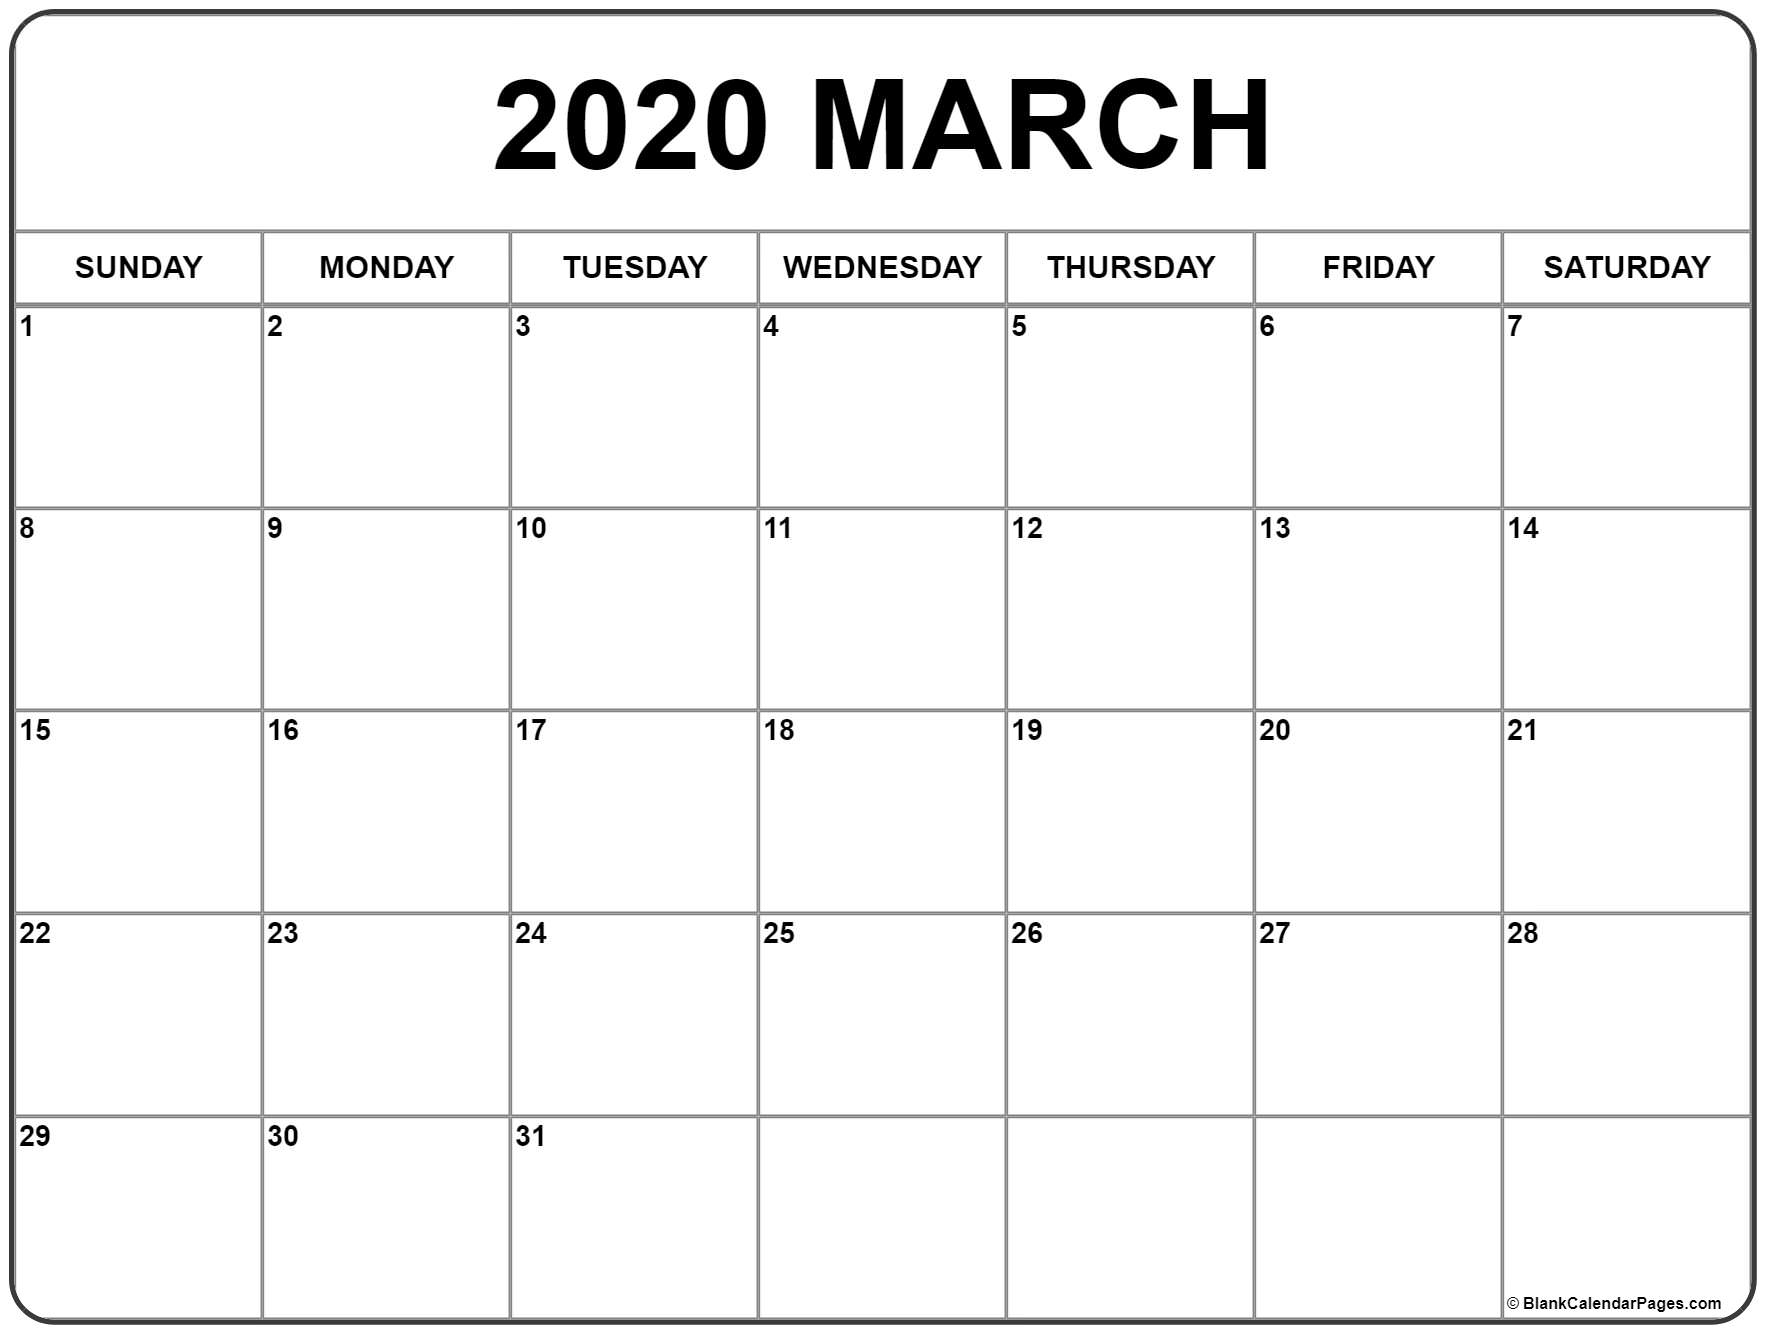 March 2020 Calendar | Free Printable Monthly Calendars intended for Calender 2020 With Space To Write